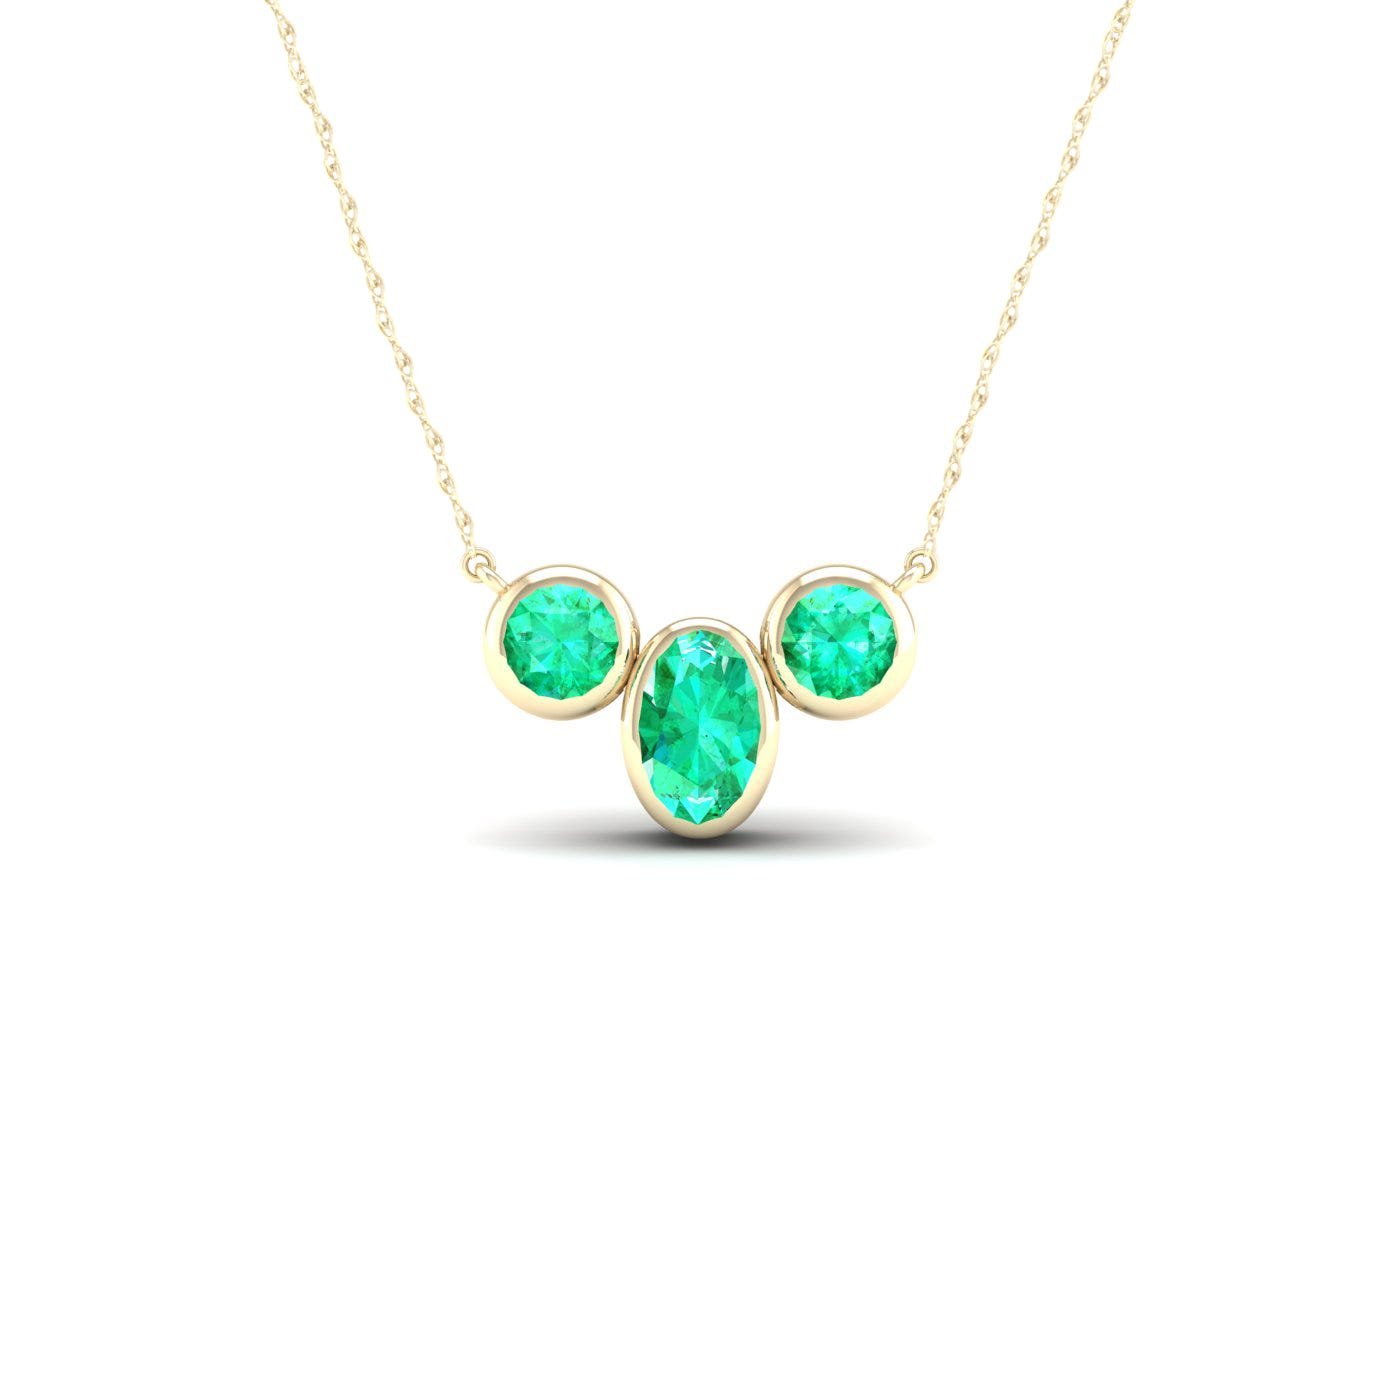 Oval & Round Bezel Emerald Necklace in 10k Yellow Gold